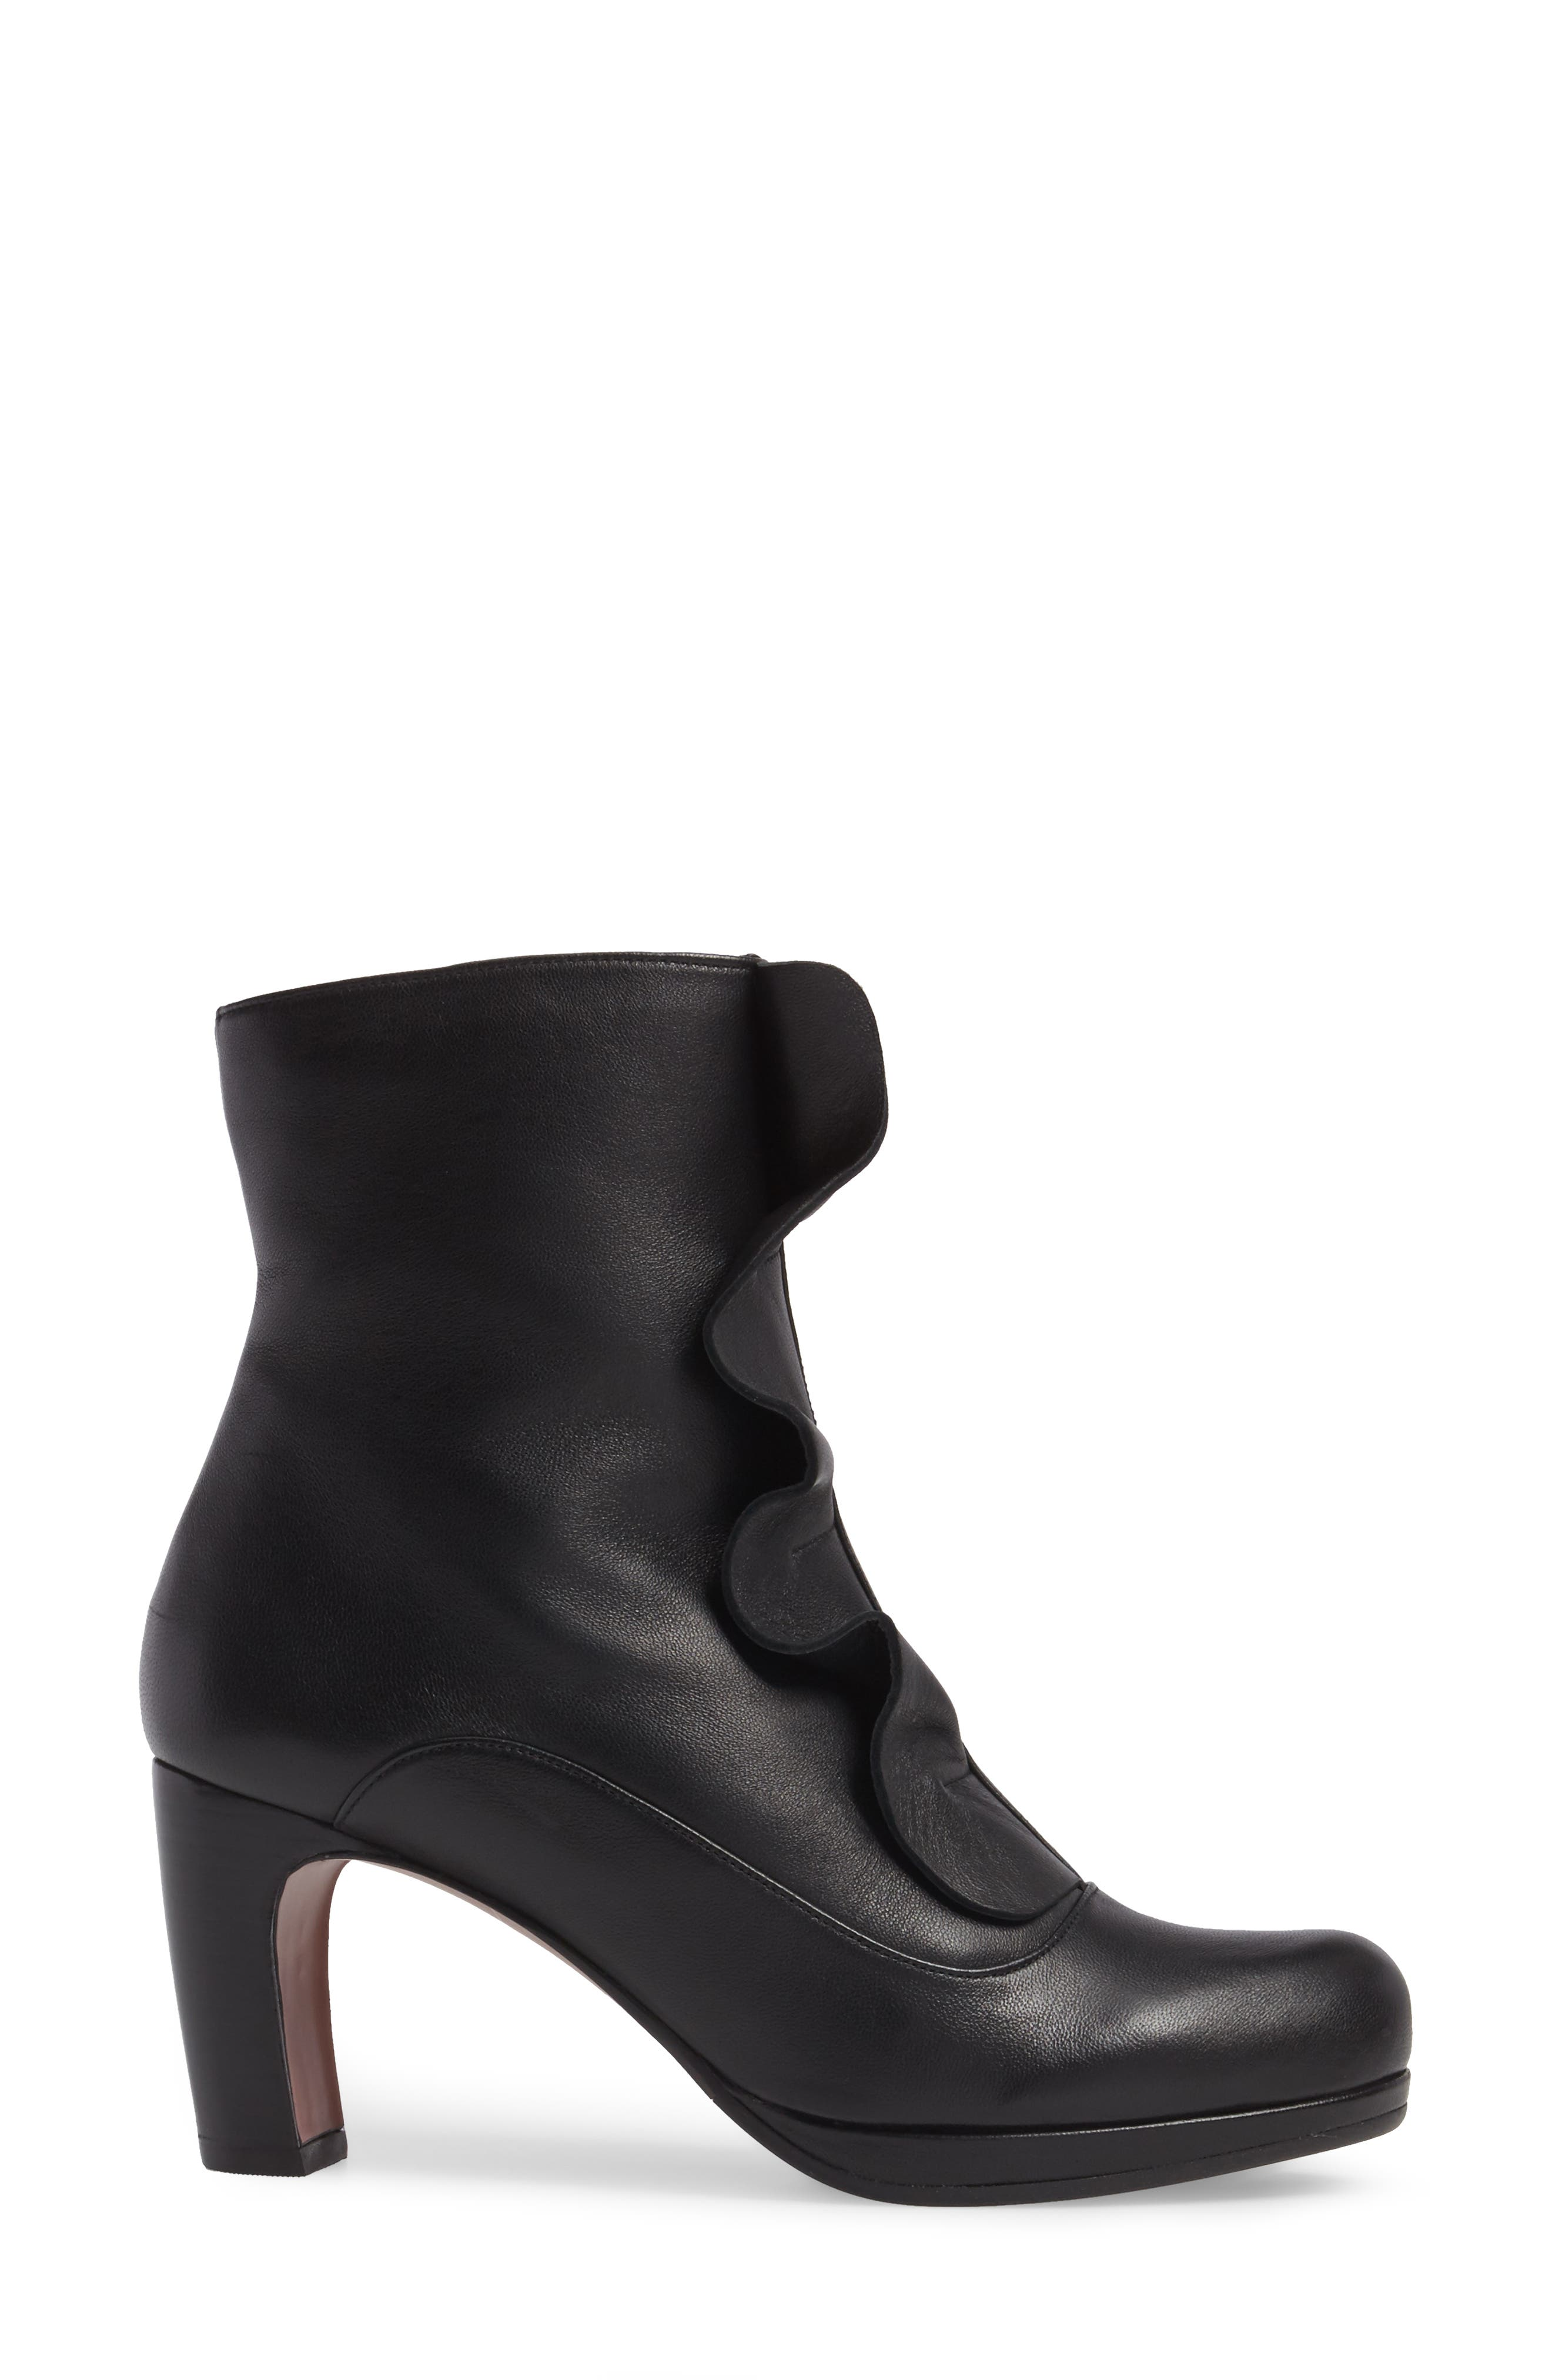 Picoli Ruffle Bootie,                             Alternate thumbnail 3, color,                             Negro